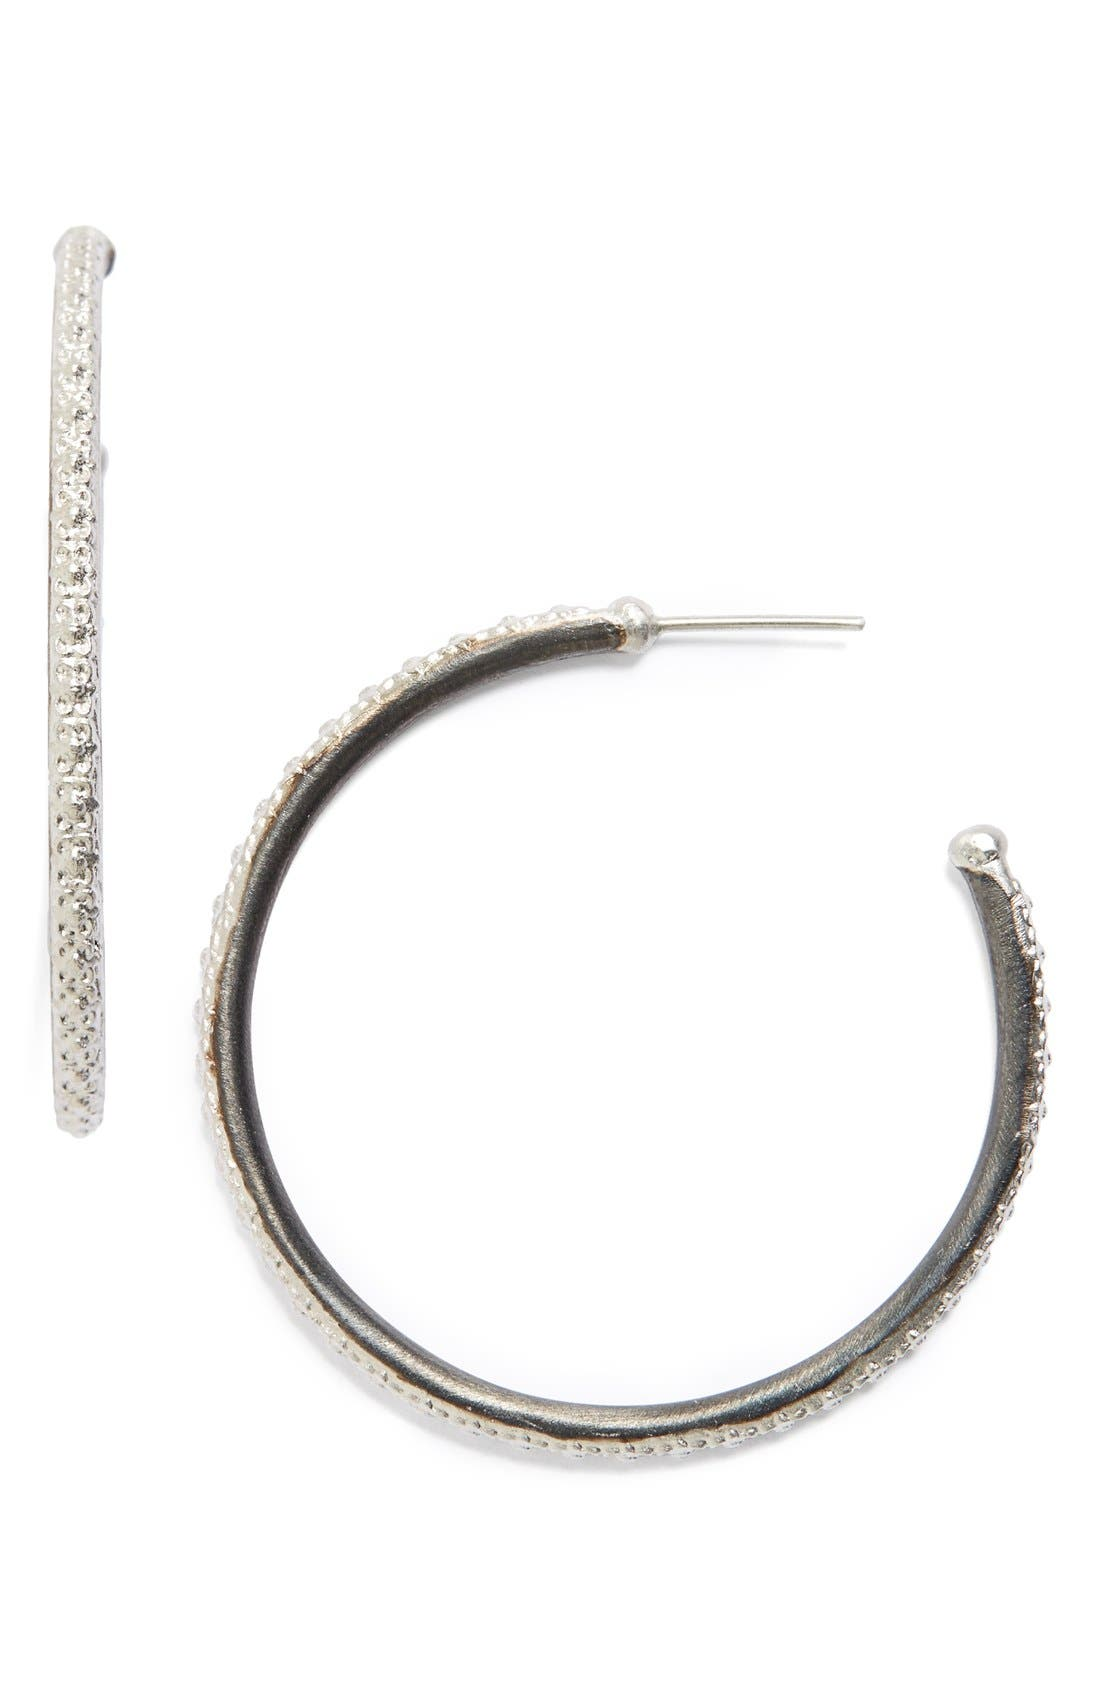 Old World Midnight Hoop Earrings,                         Main,                         color, SILVER